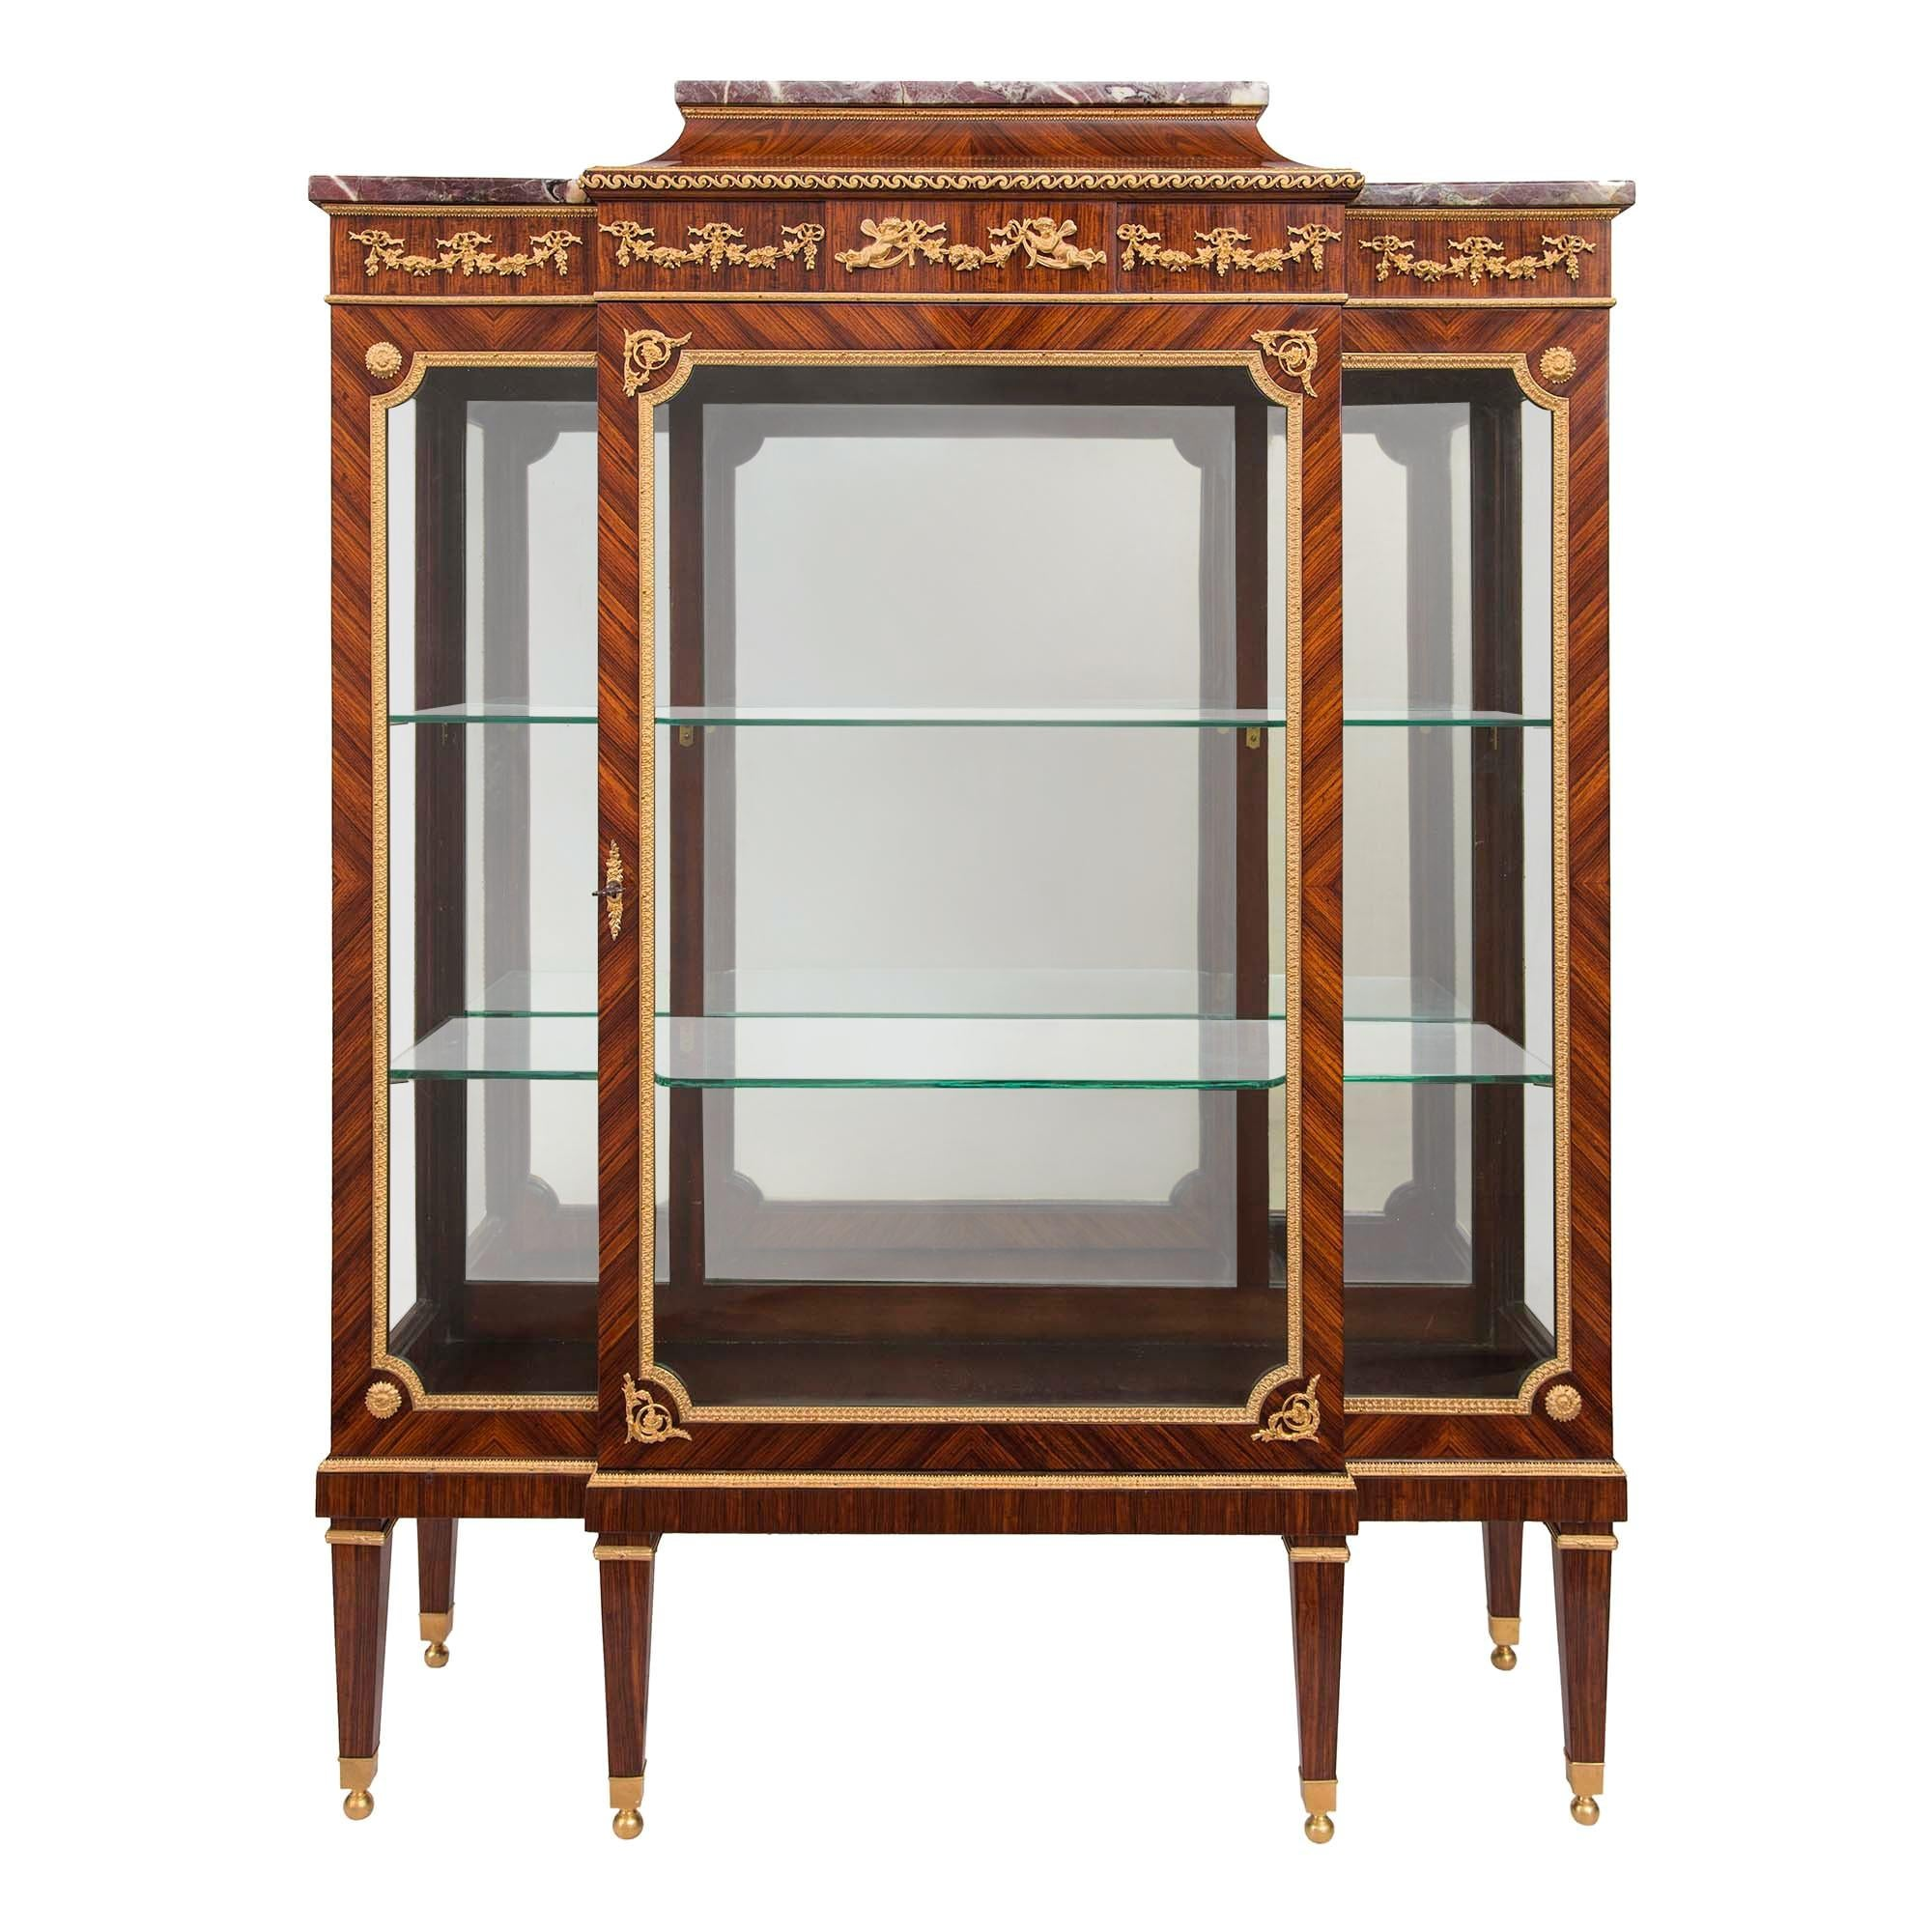 French 19th Century Louis XVI Style Mounted Display Cabinet/Vitrine